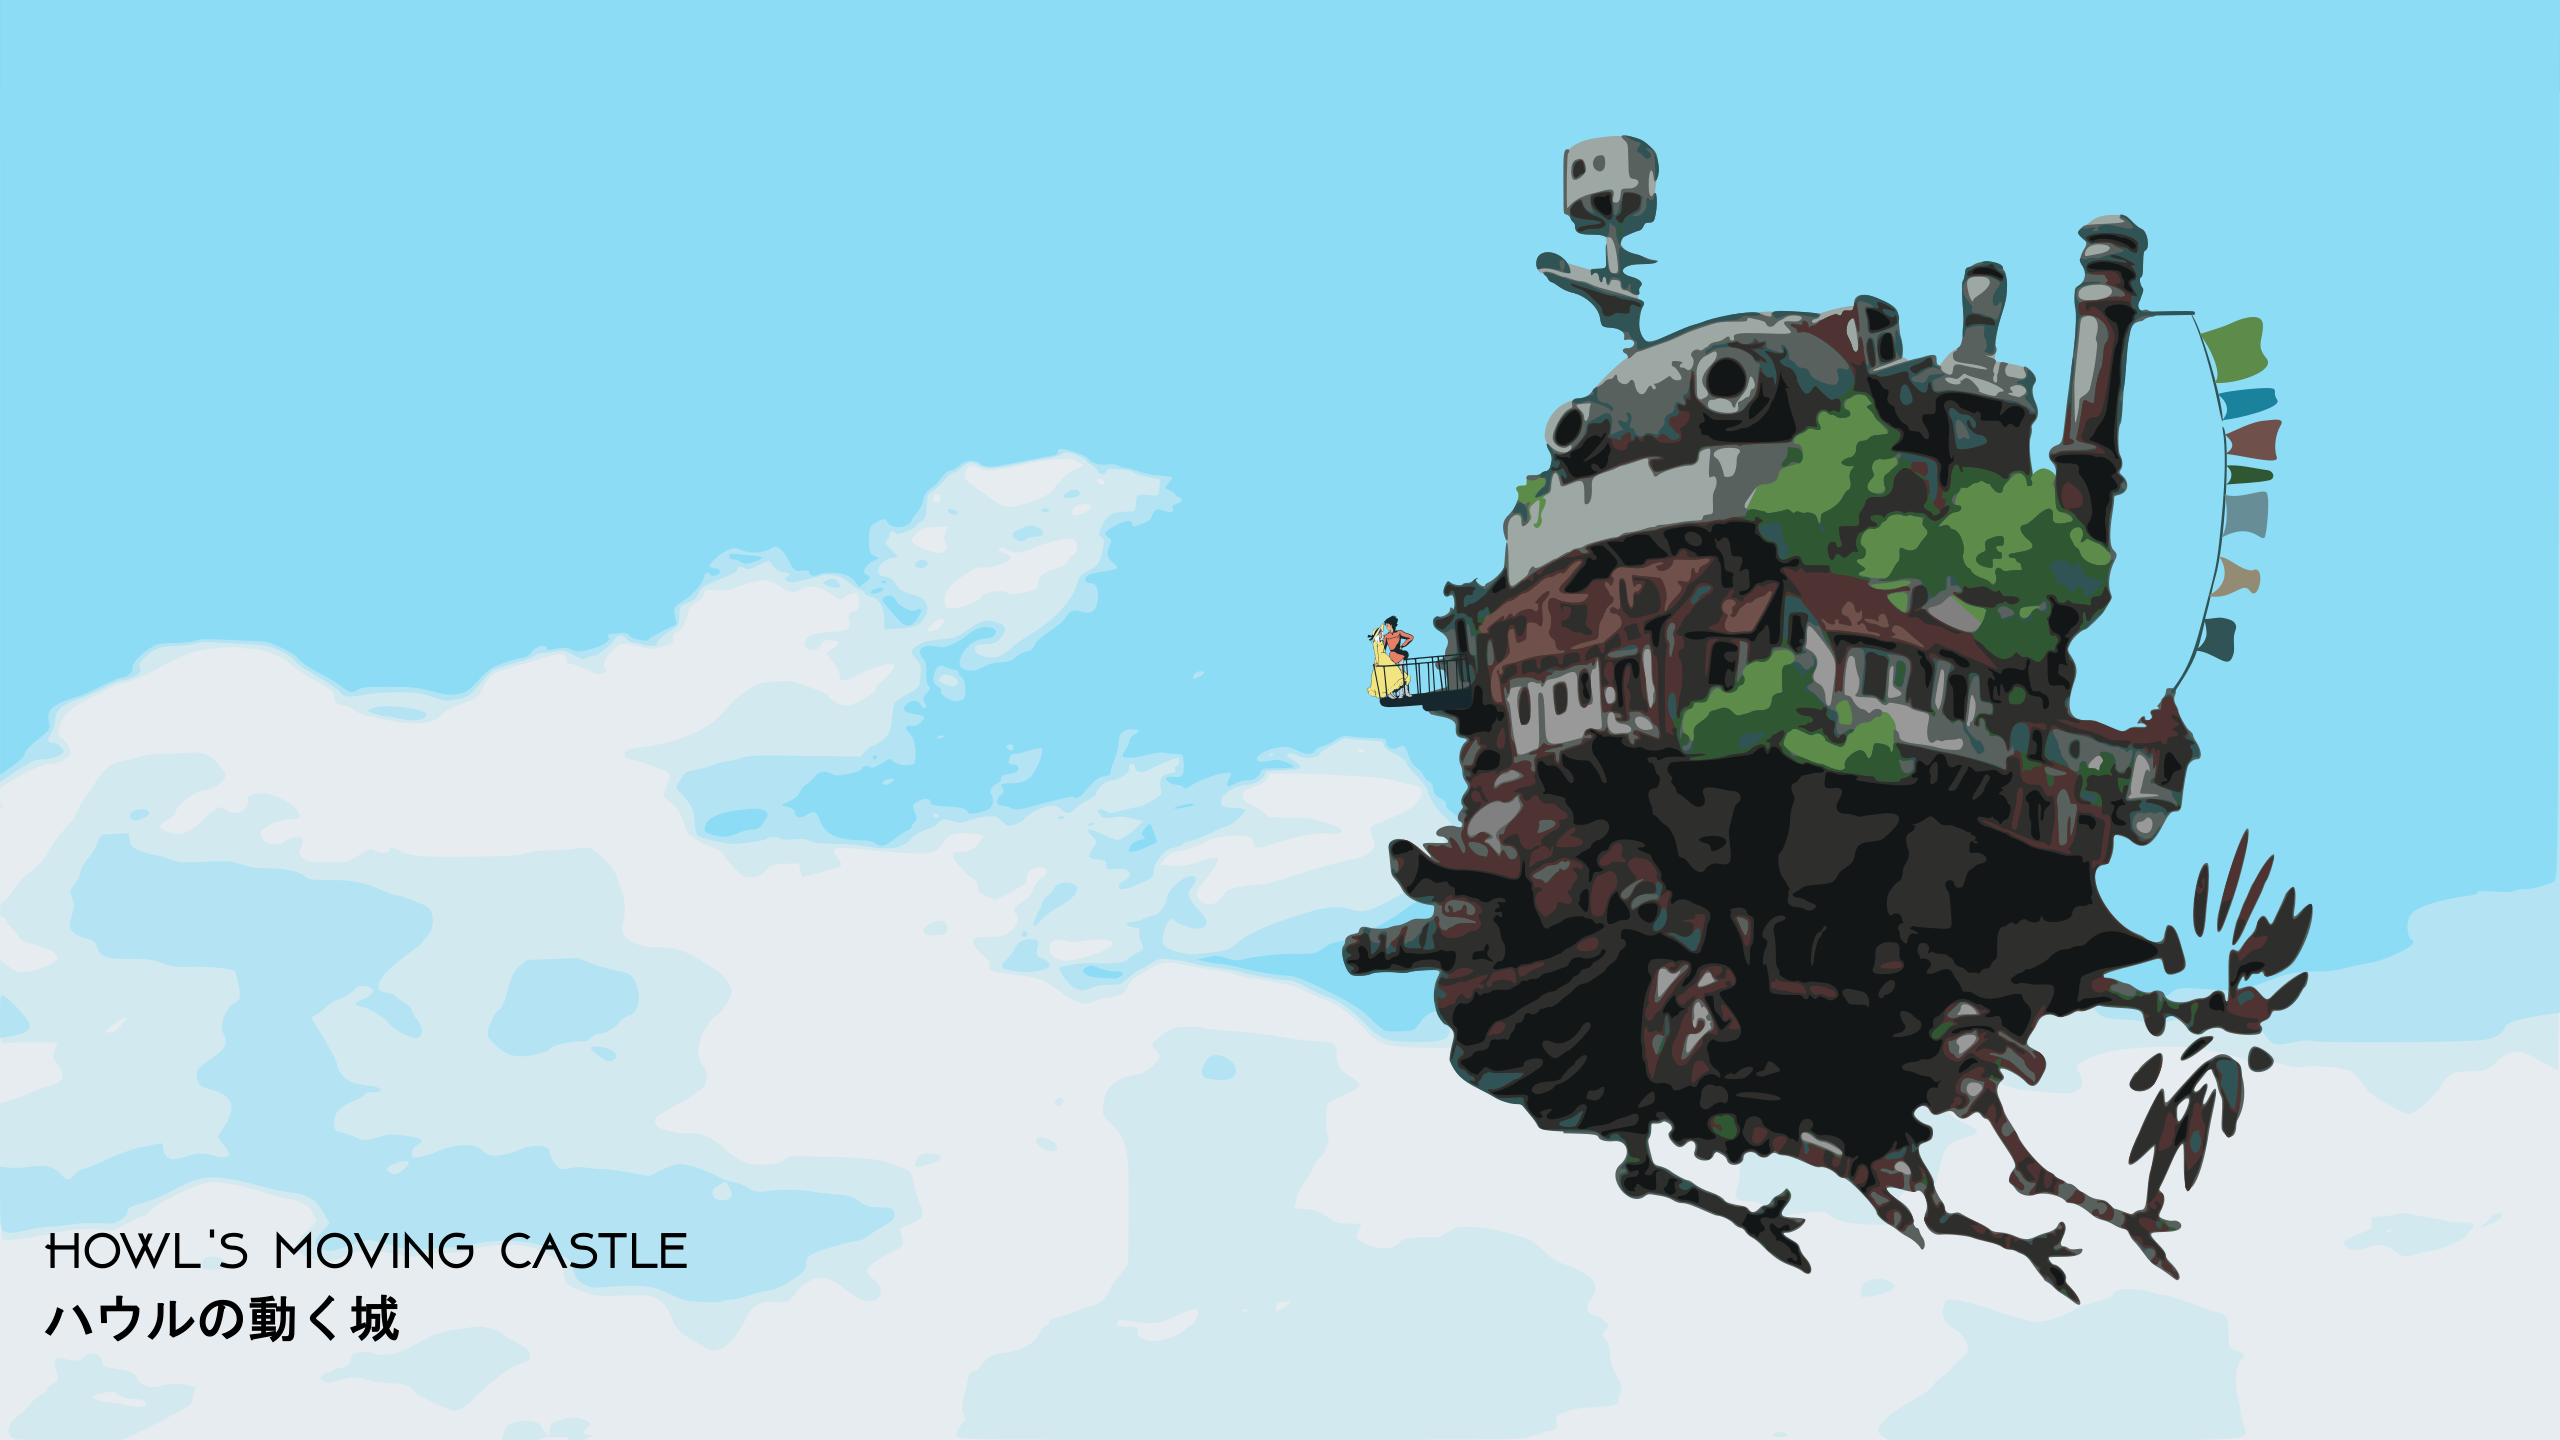 howls moving castle wallpaper 1440p 2 by jinco1255 on